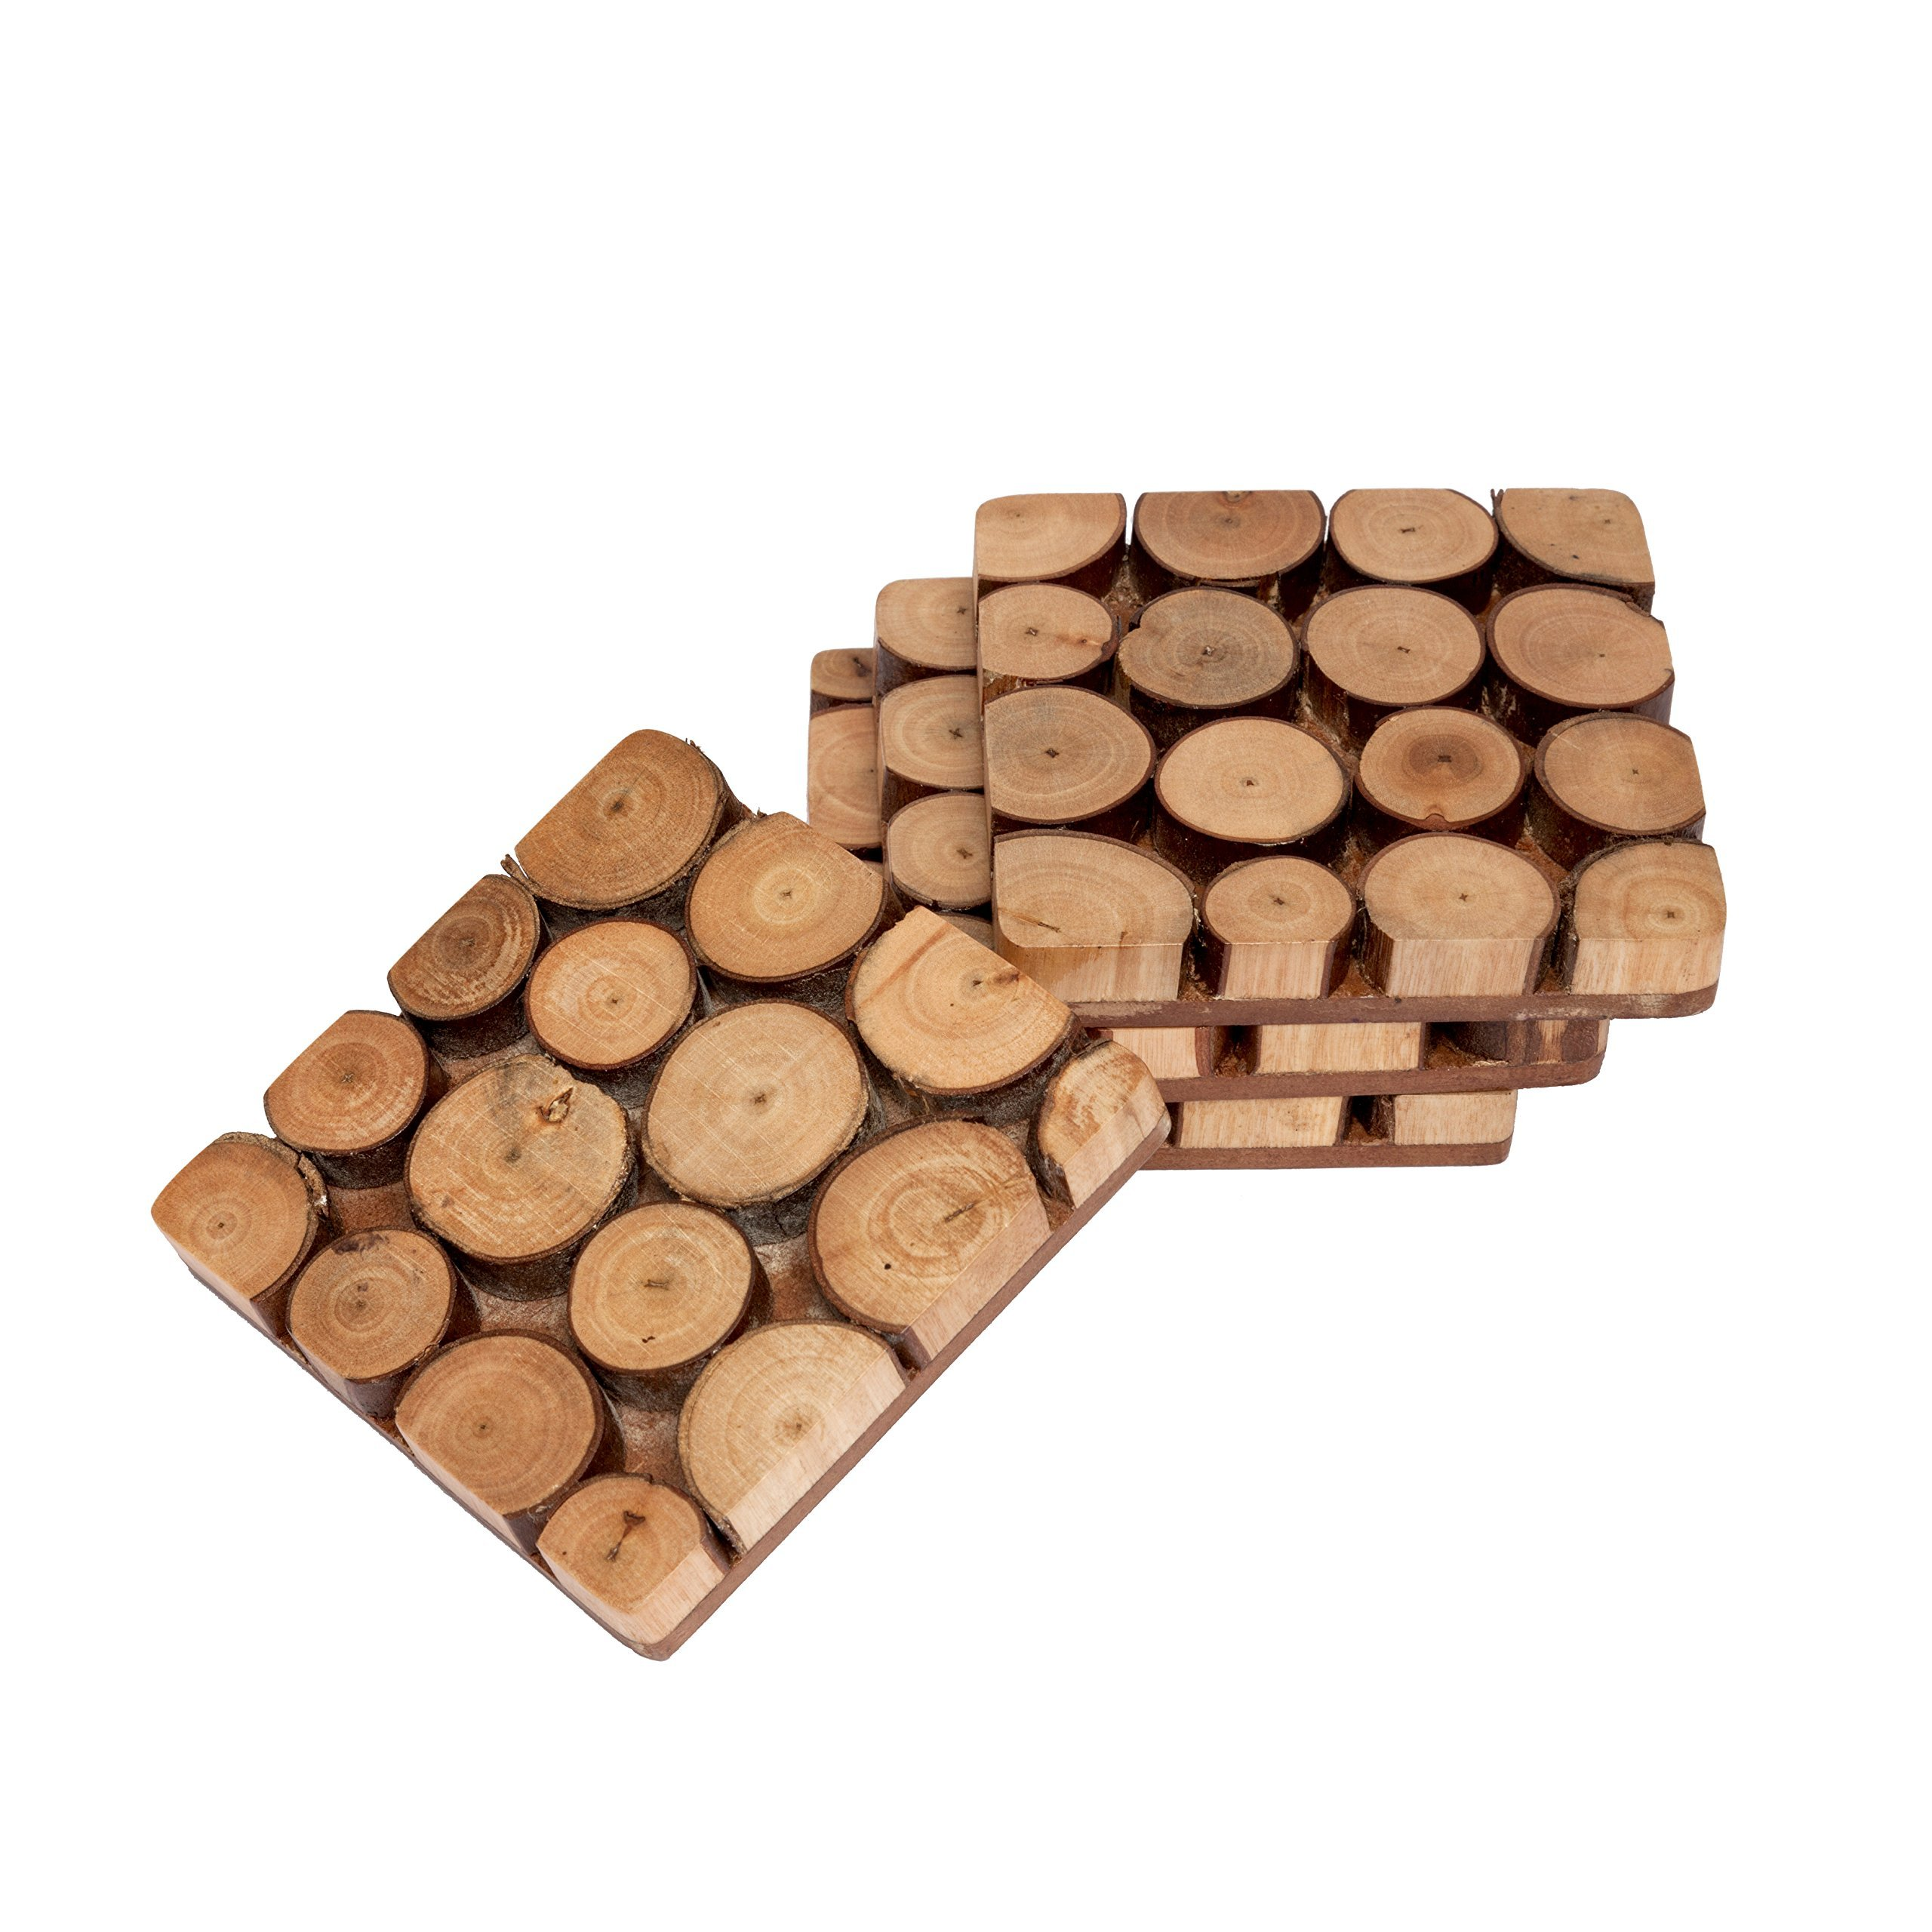 GoCraft Handmade Wood Coasters | Wood Slices with Tree Bark Coasters for your Drinks, Beverages & Wine/Bar Glasses (Set of 4)